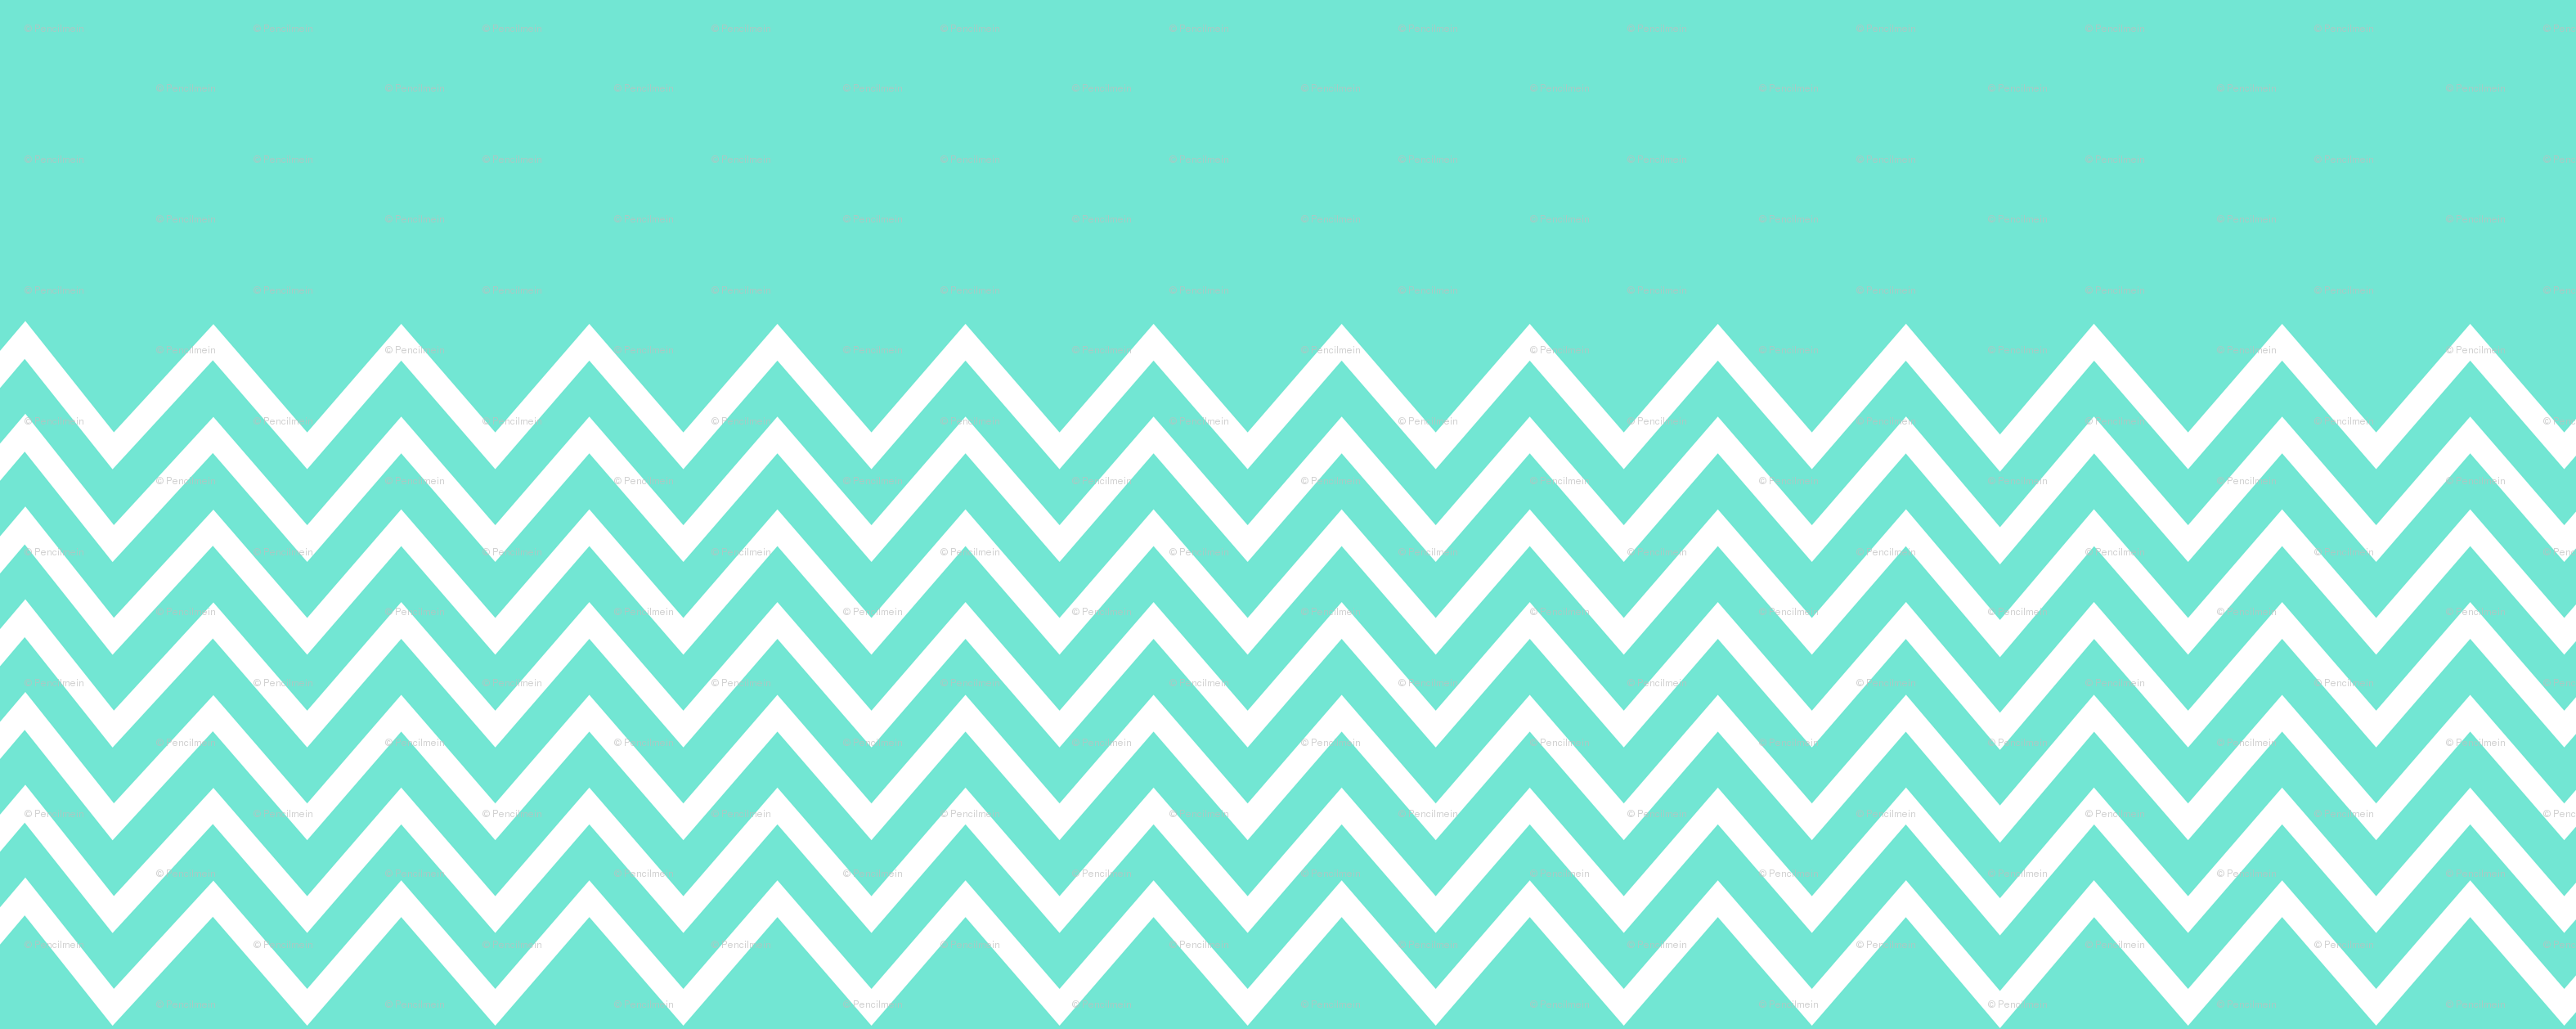 Chevron Anchor 3150x1258